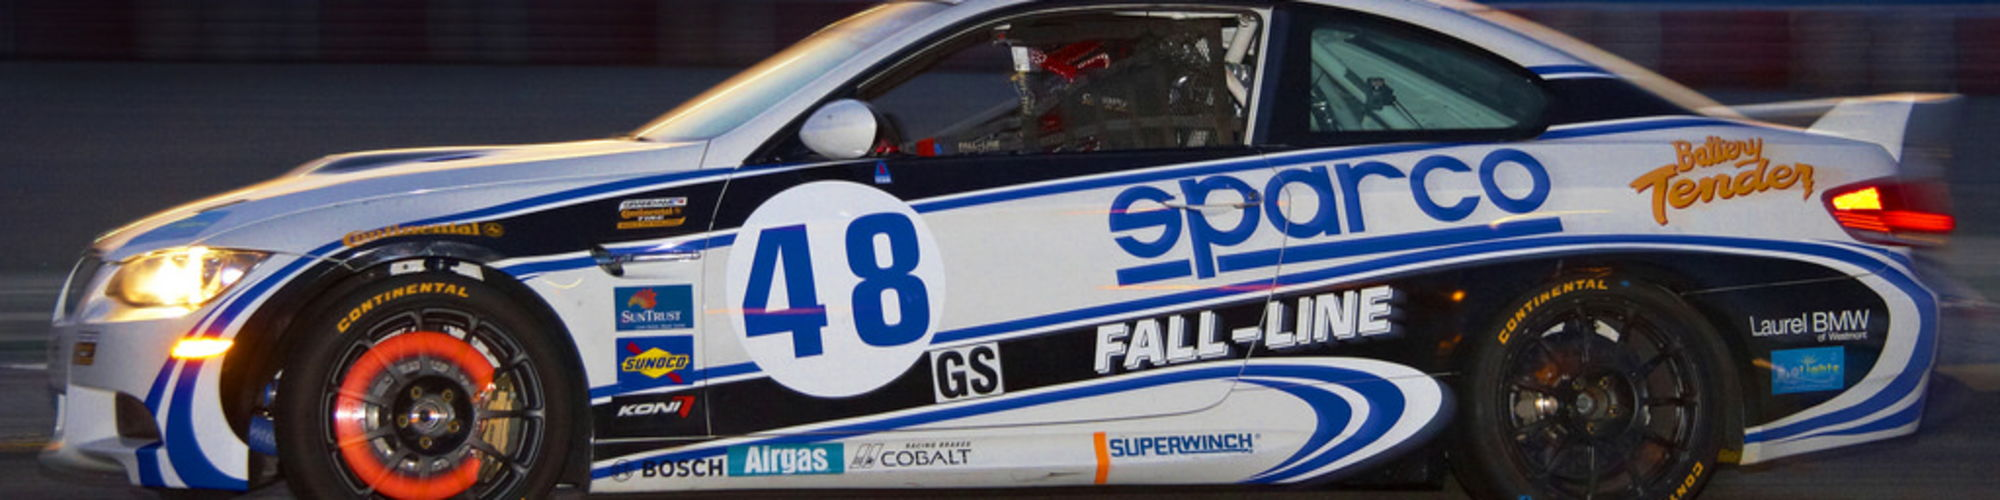 Fall-Line Motorsports  cover image